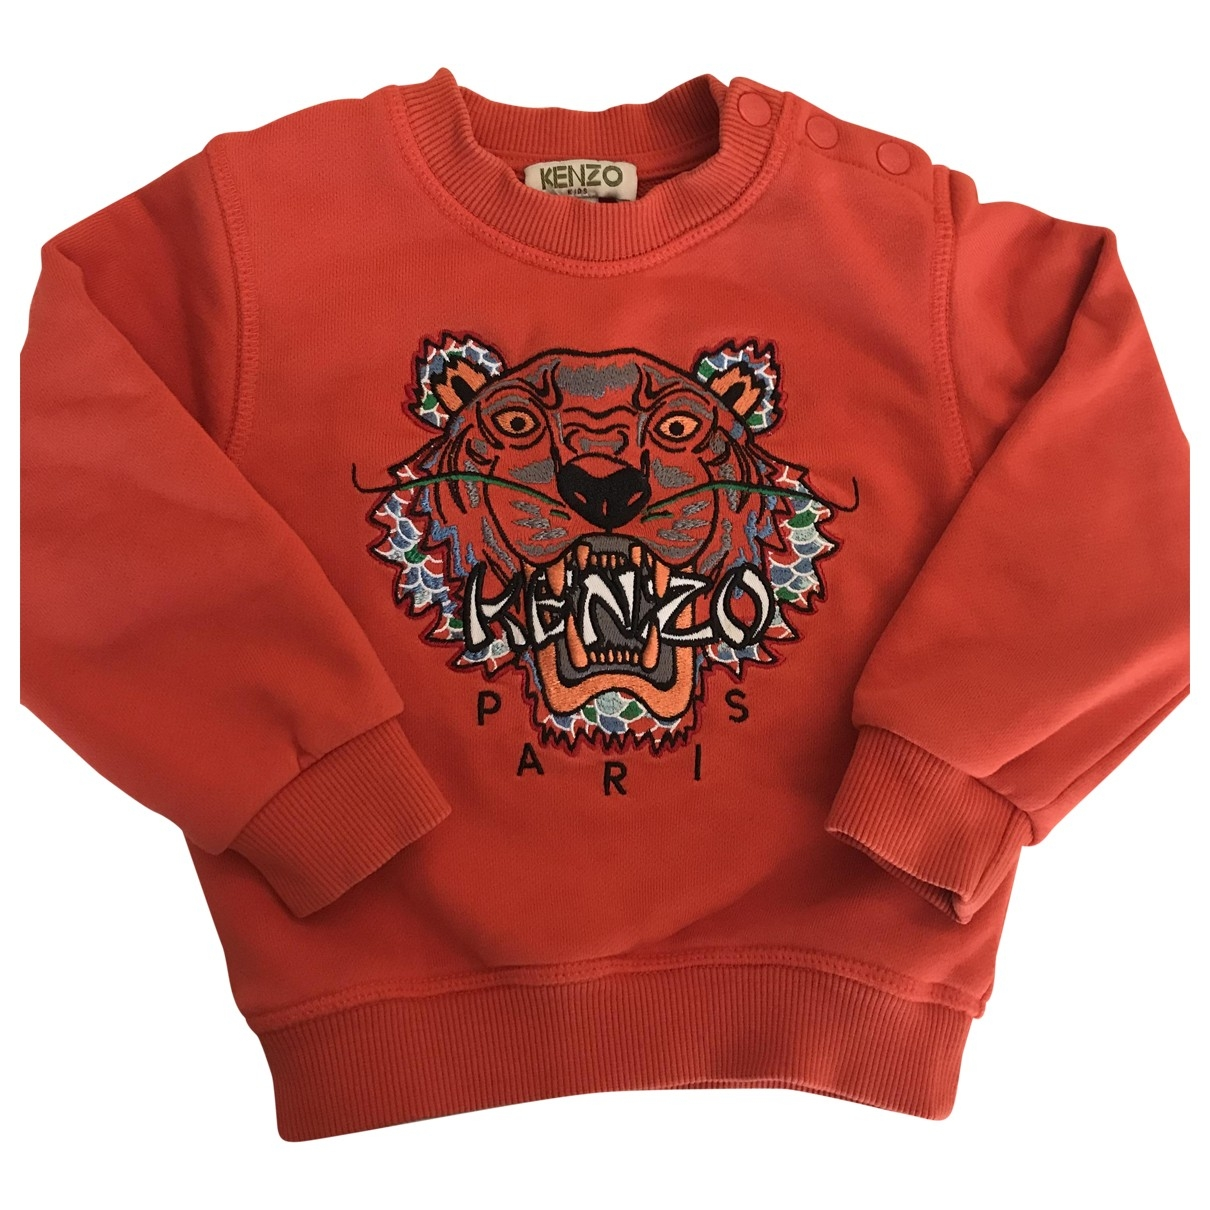 Kenzo \N Red Cotton Knitwear for Kids 2 years - up to 86cm FR